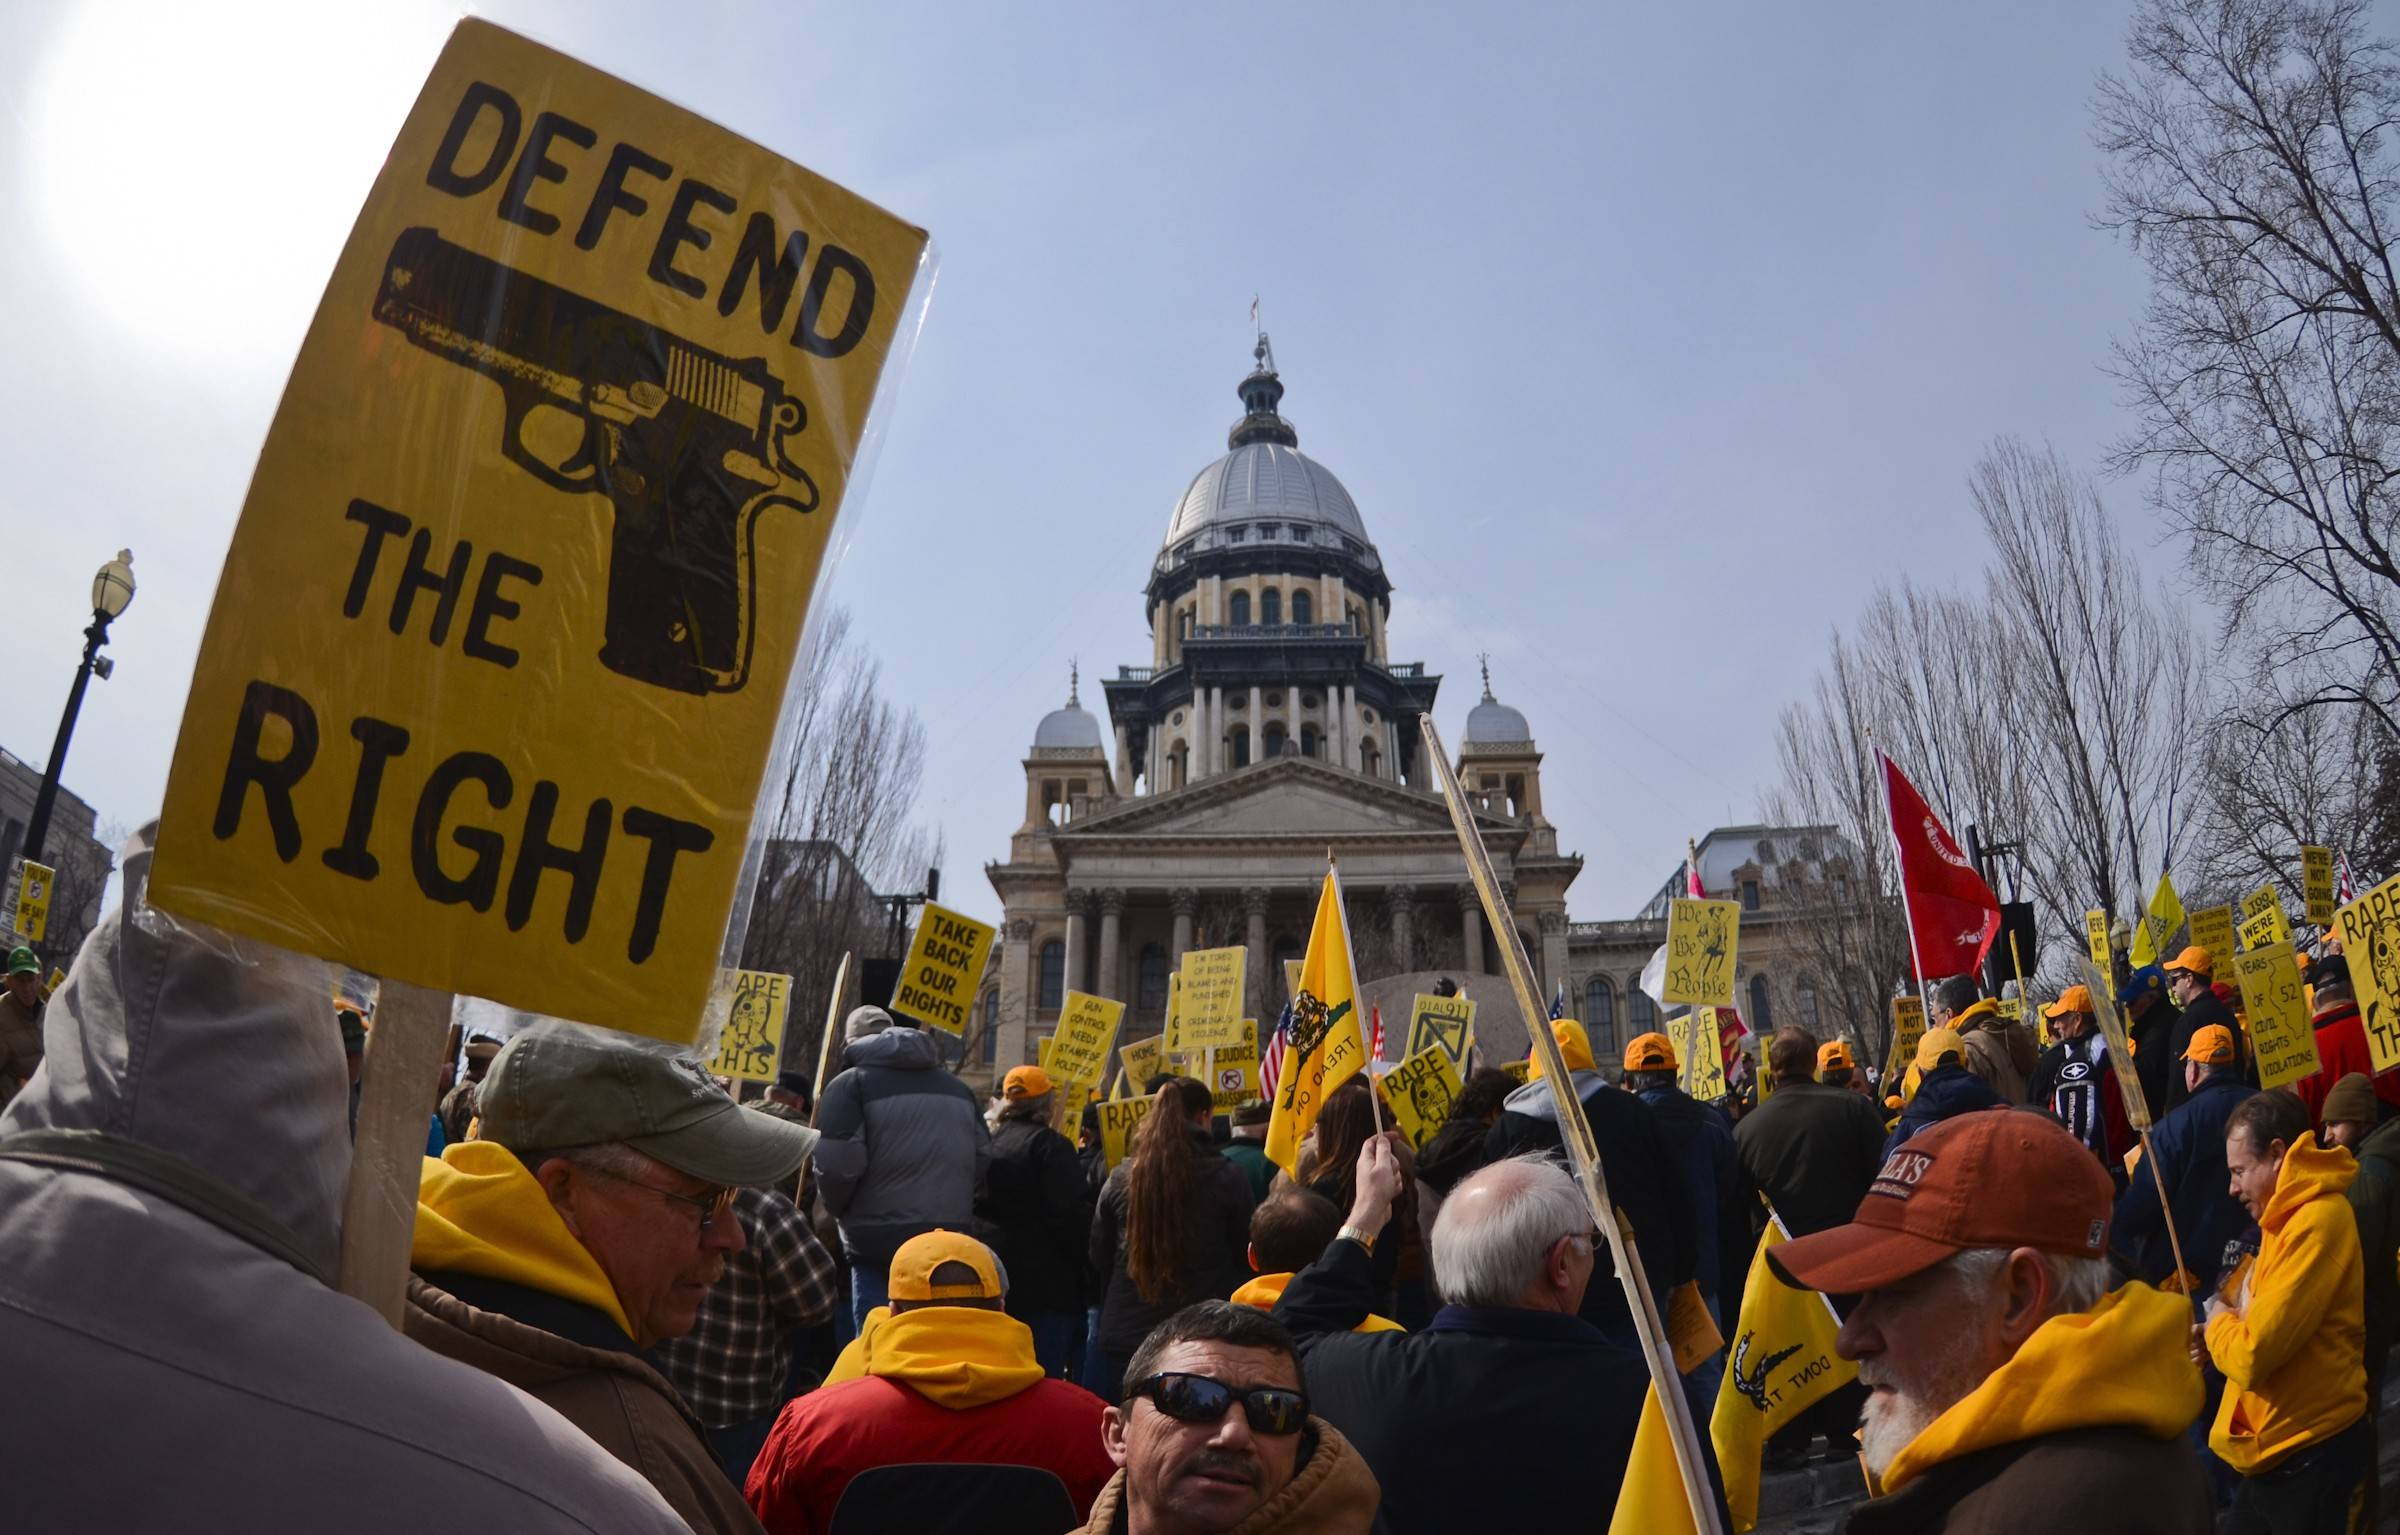 Gun owners march on state Capitol, want to 'liberalize' concealed carry